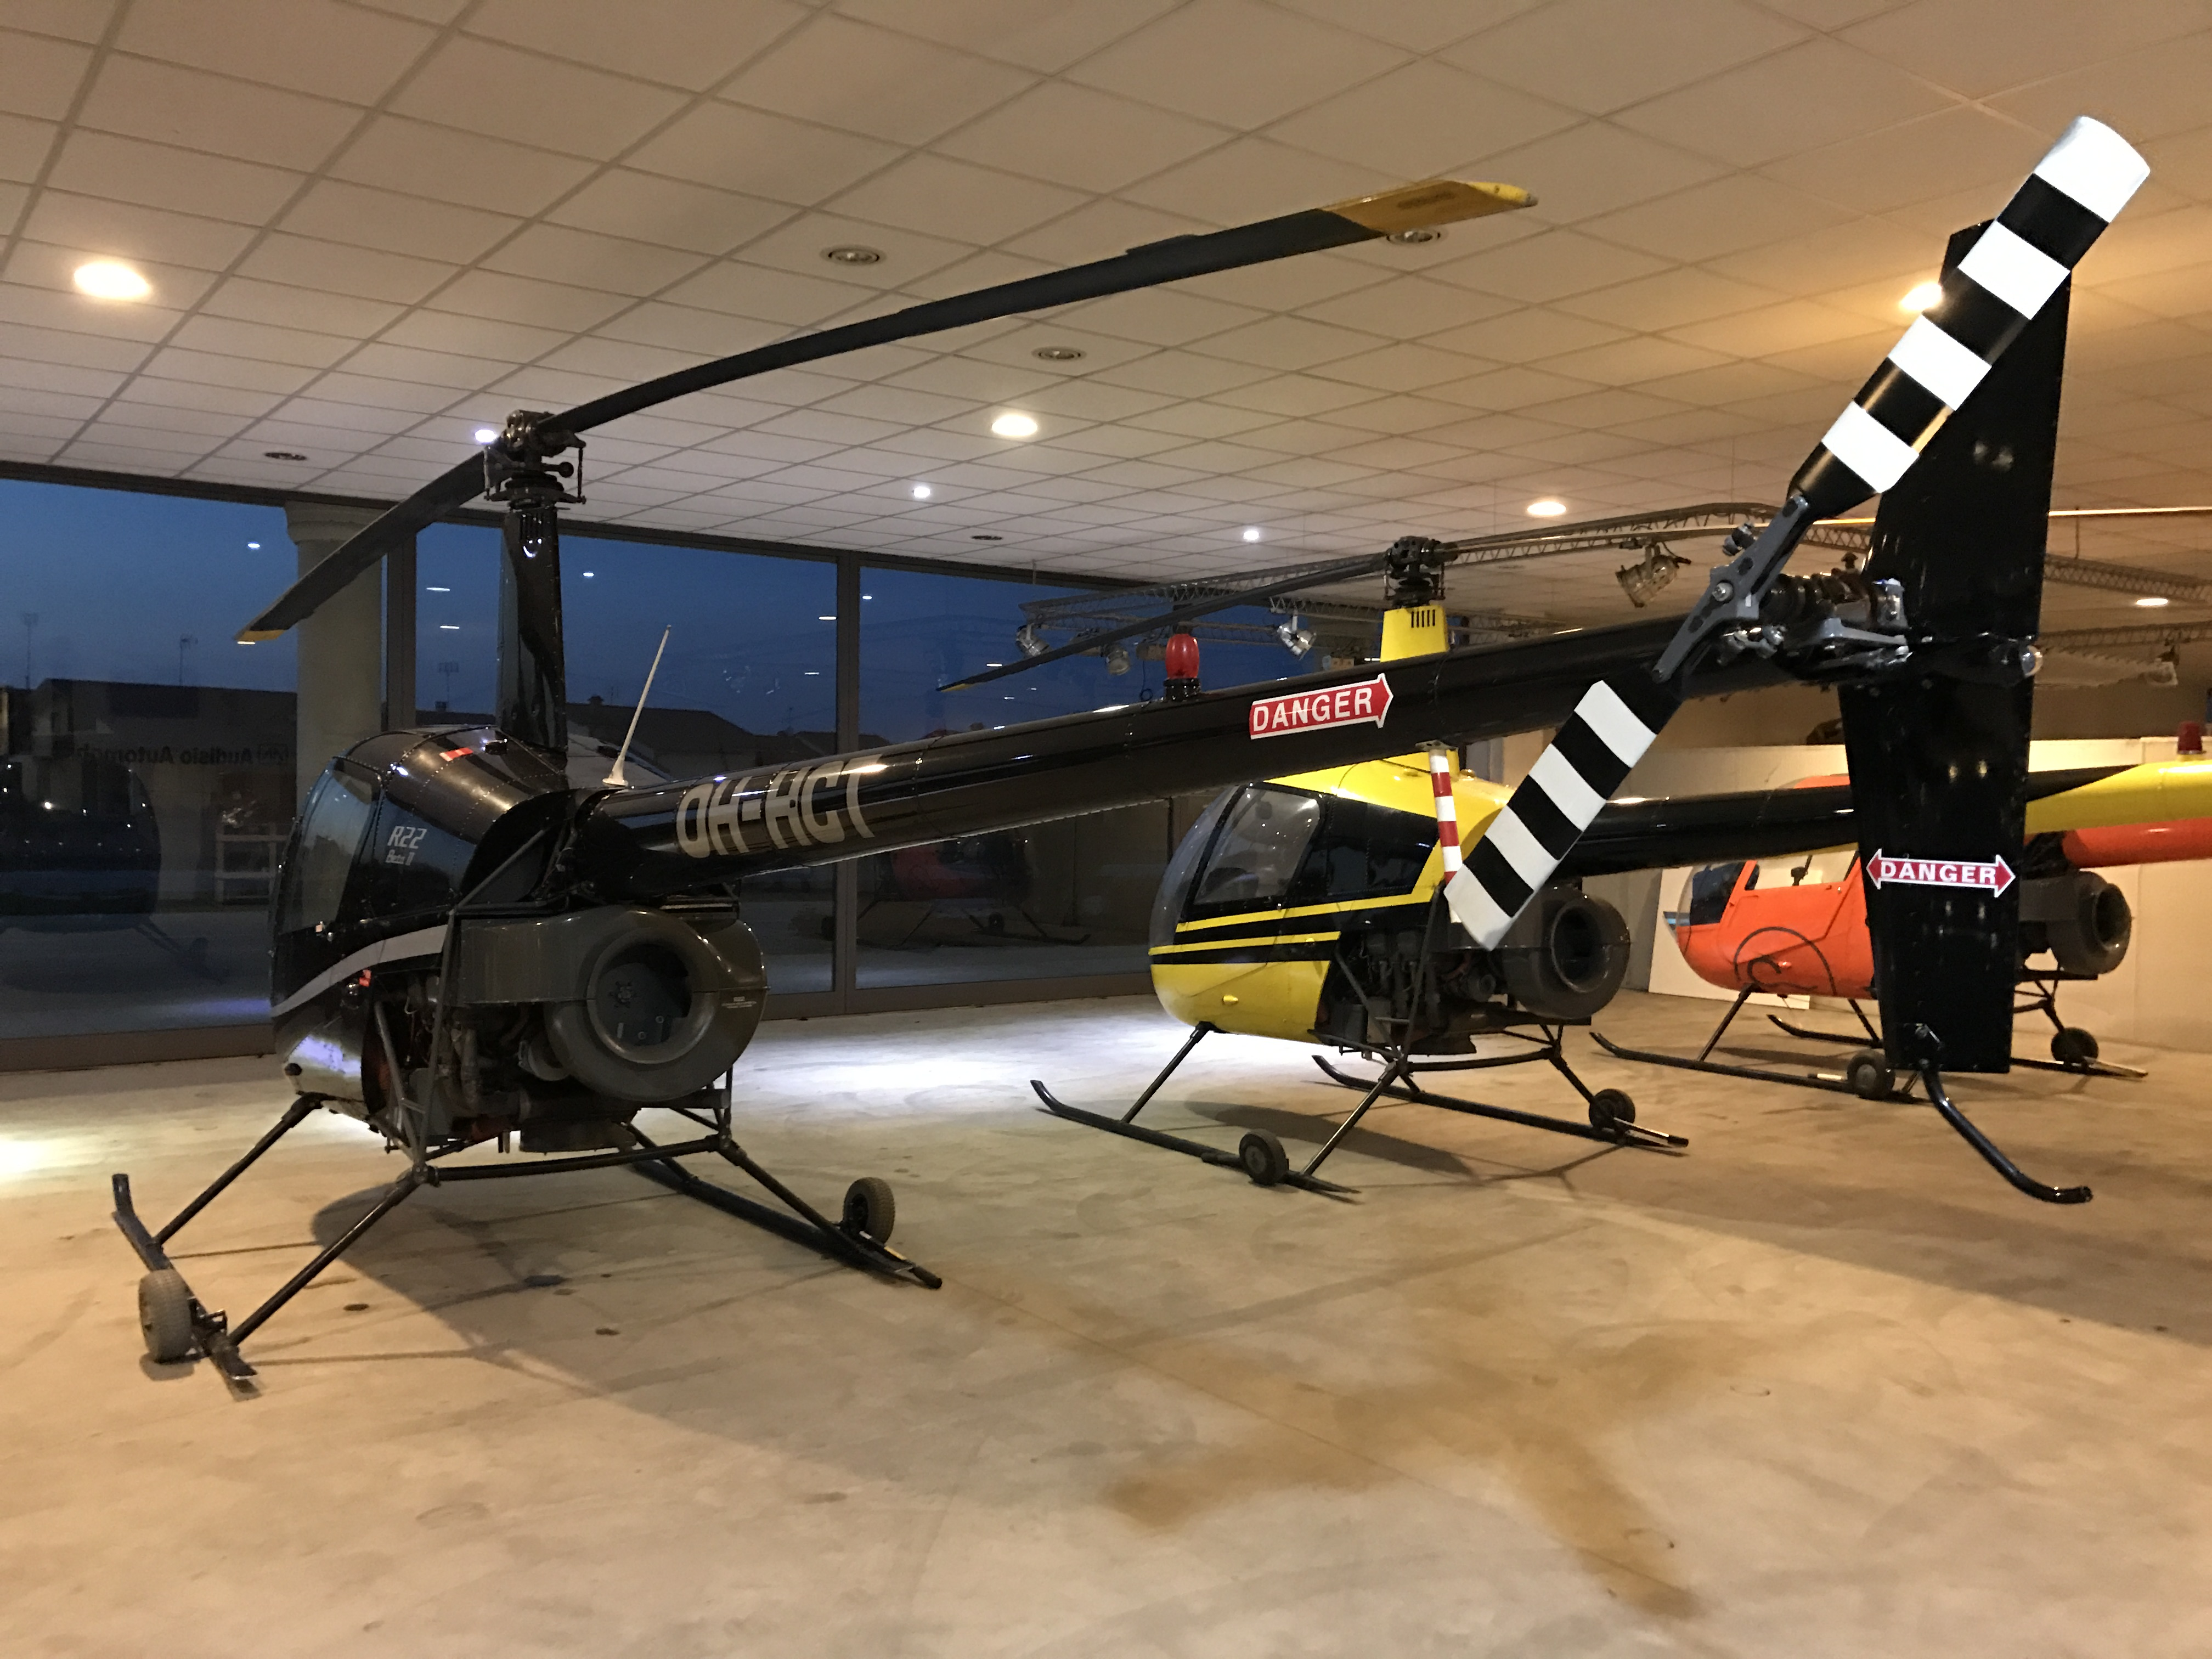 Elicottero R22 : Robinson r beta helicopterstrader